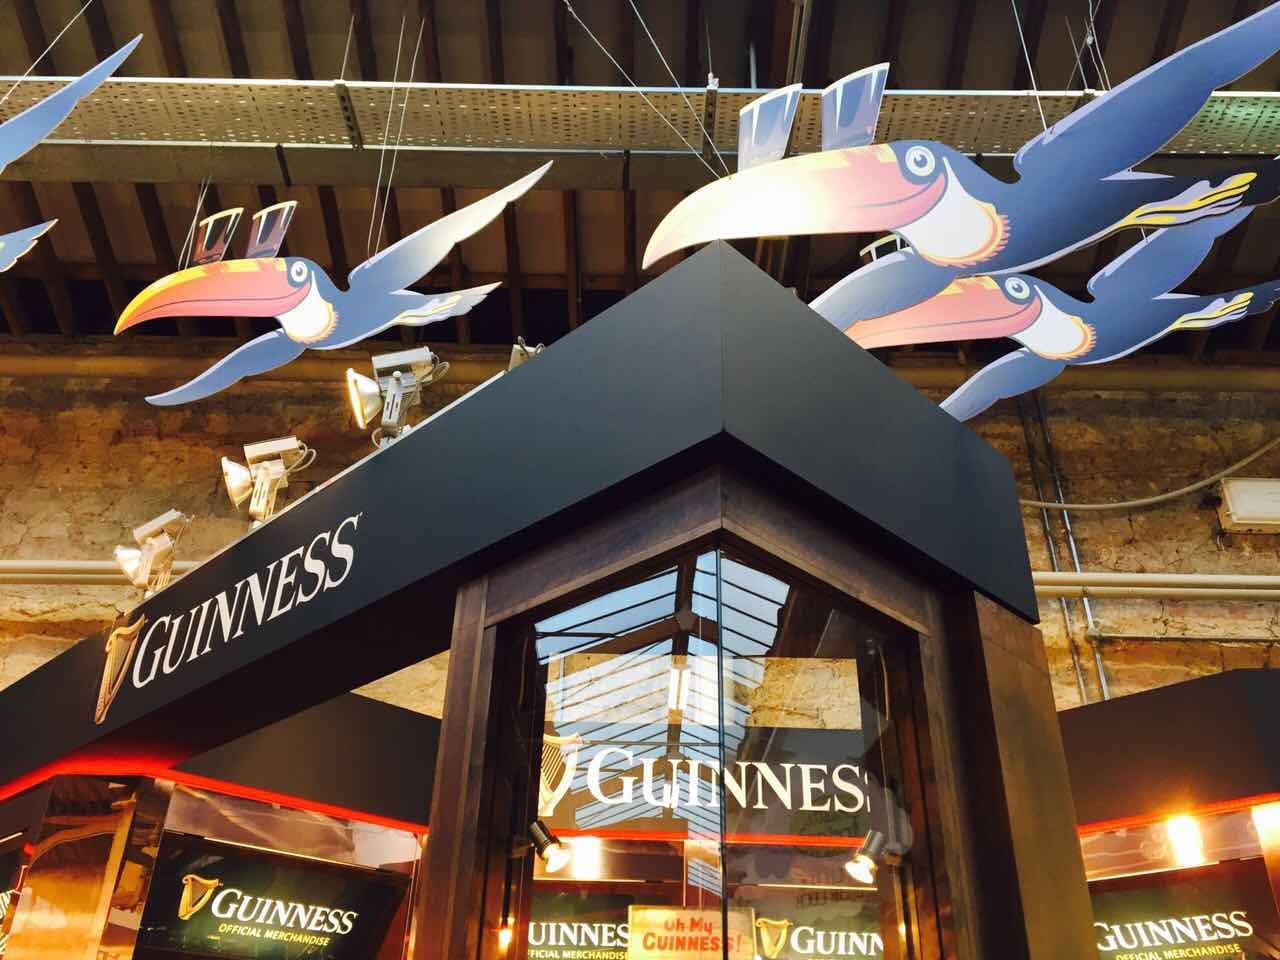 IBE Exhibit - National & International Trade Show Stand Design - Shamrock Gift Co. Guinness RDS Showcase Exhibit - Image